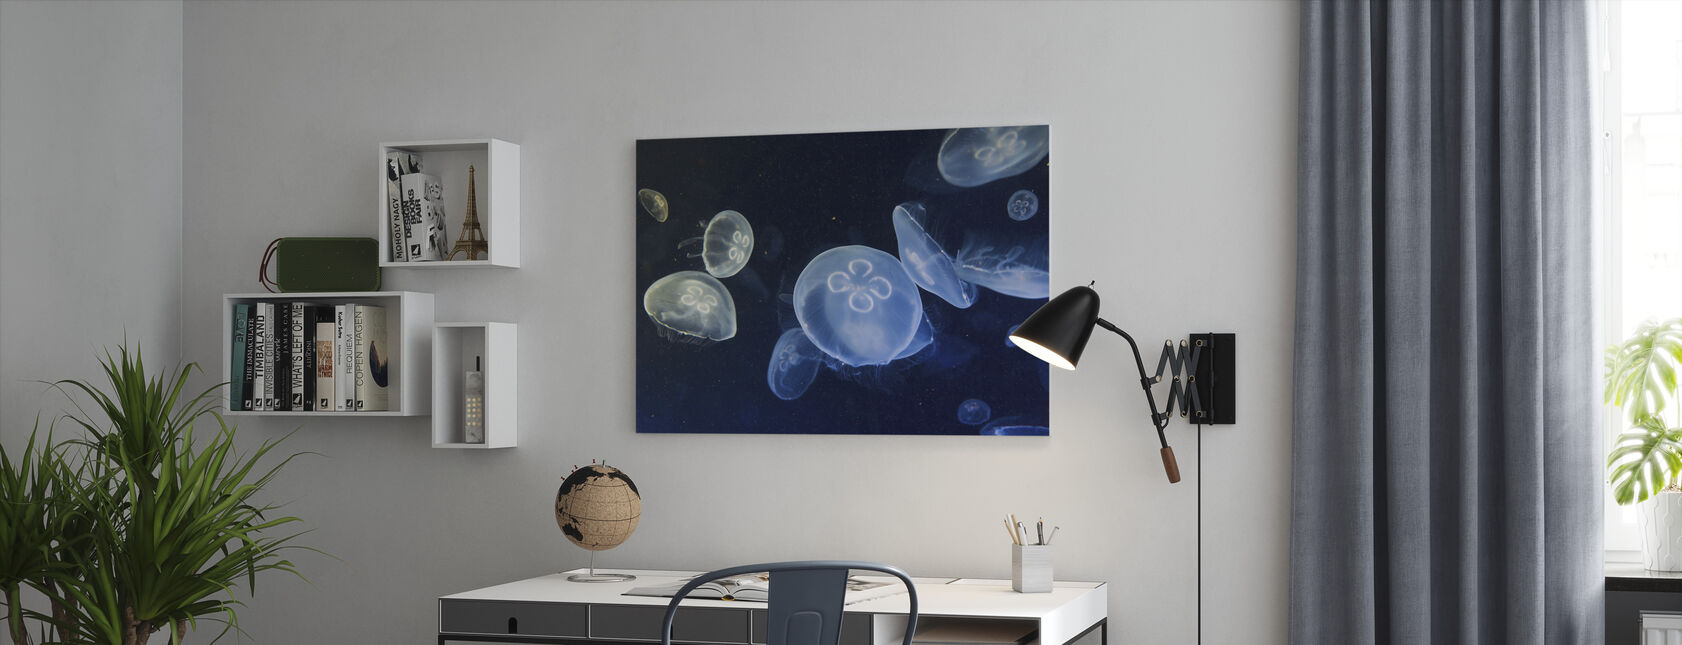 Floating Jellyfish - Canvas print - Office